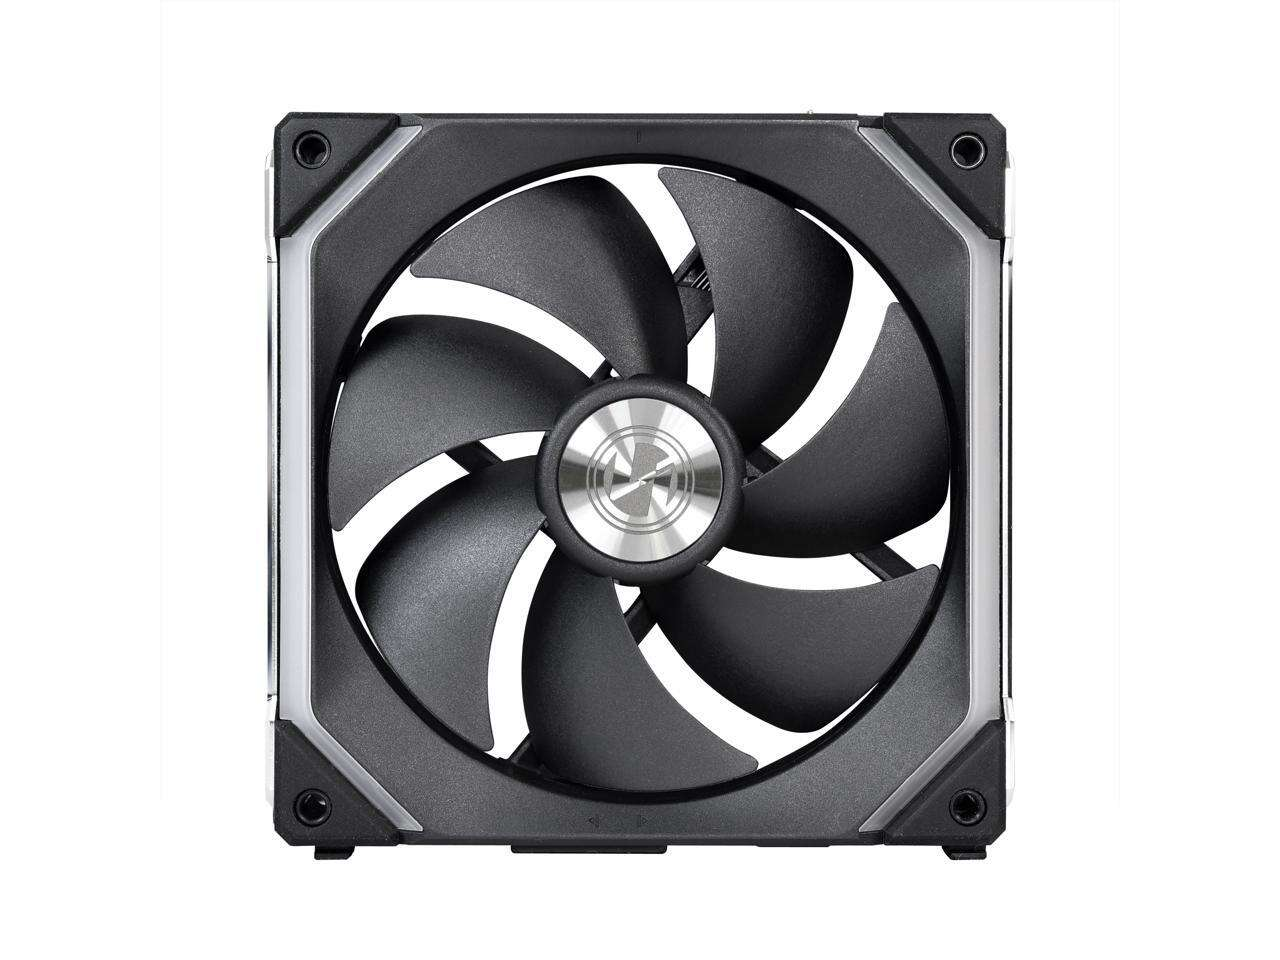 LIAN LI UNI FAN SL140 RGB BLACK 1X 14CM FAN PACK WITHOUT CONTROLLER